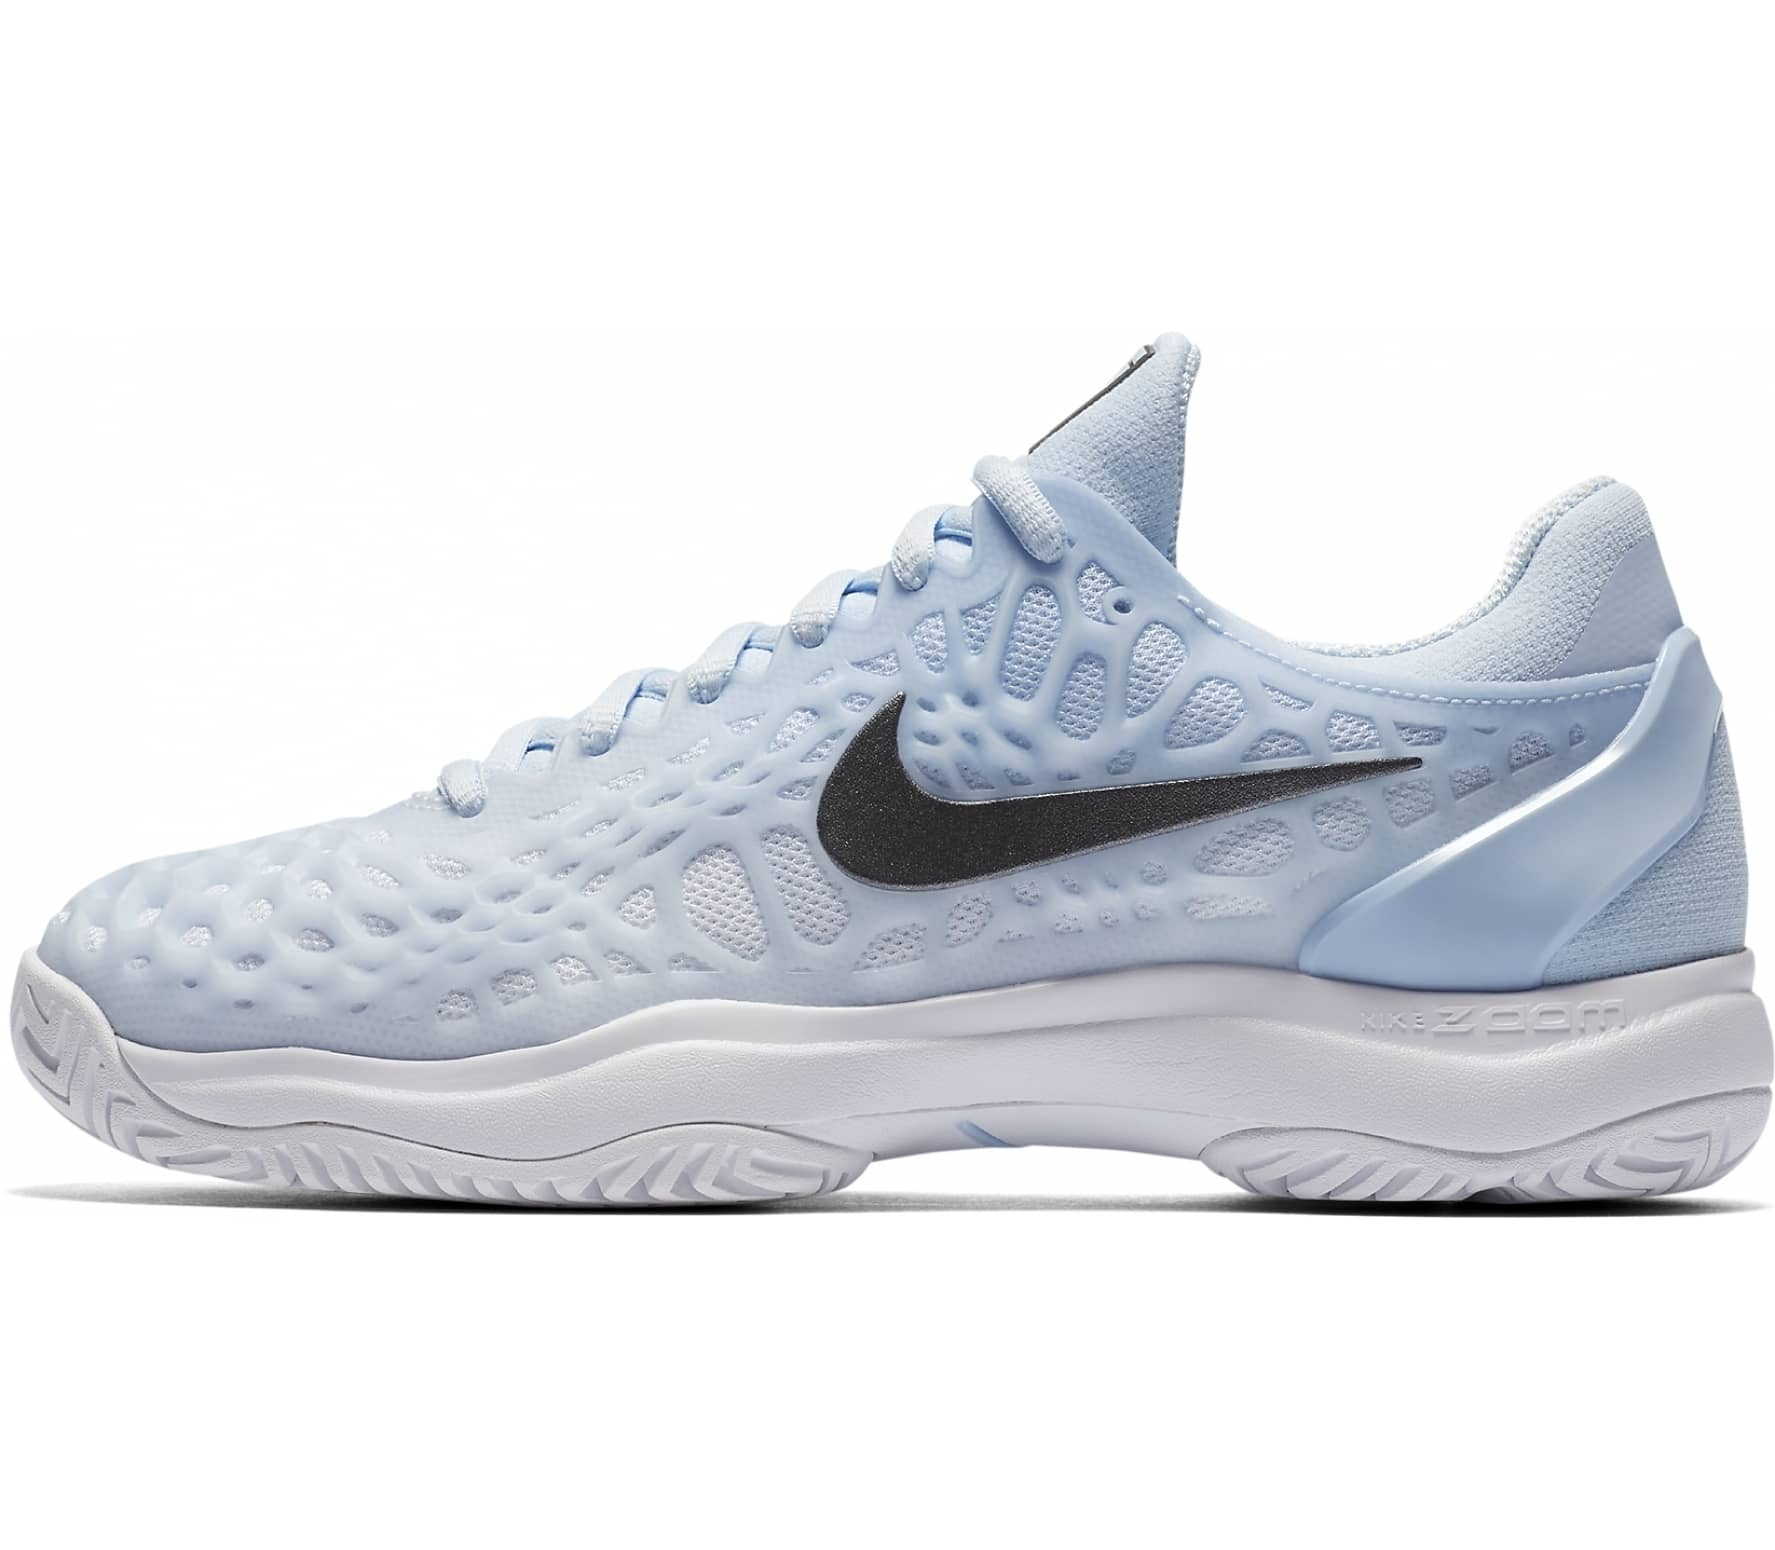 new style 0394a 1e103 Nike - Zoom Cage 3 women s tennis shoes (light blue)